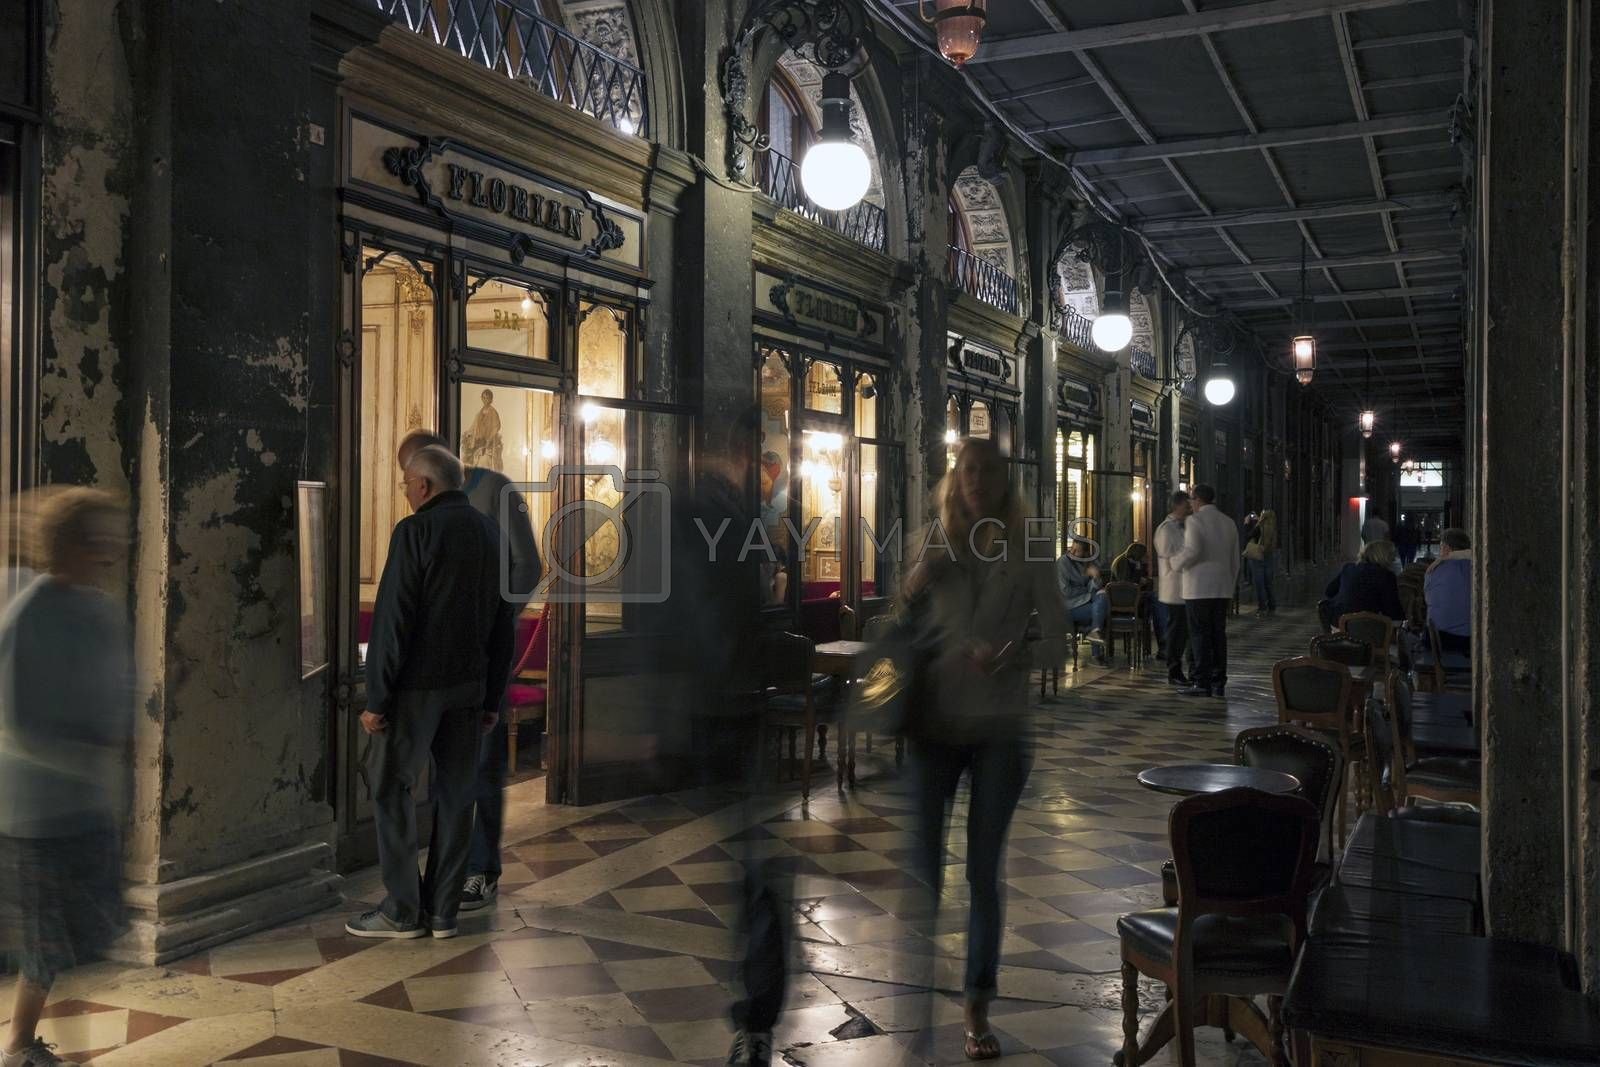 VENICE, ITALY - MAY 29, 2015: The oldest coffee house Florian in Piazza San Marco in Venice at night. Tourists wandering around, some of them in motion blur, some exploring cafe menu.